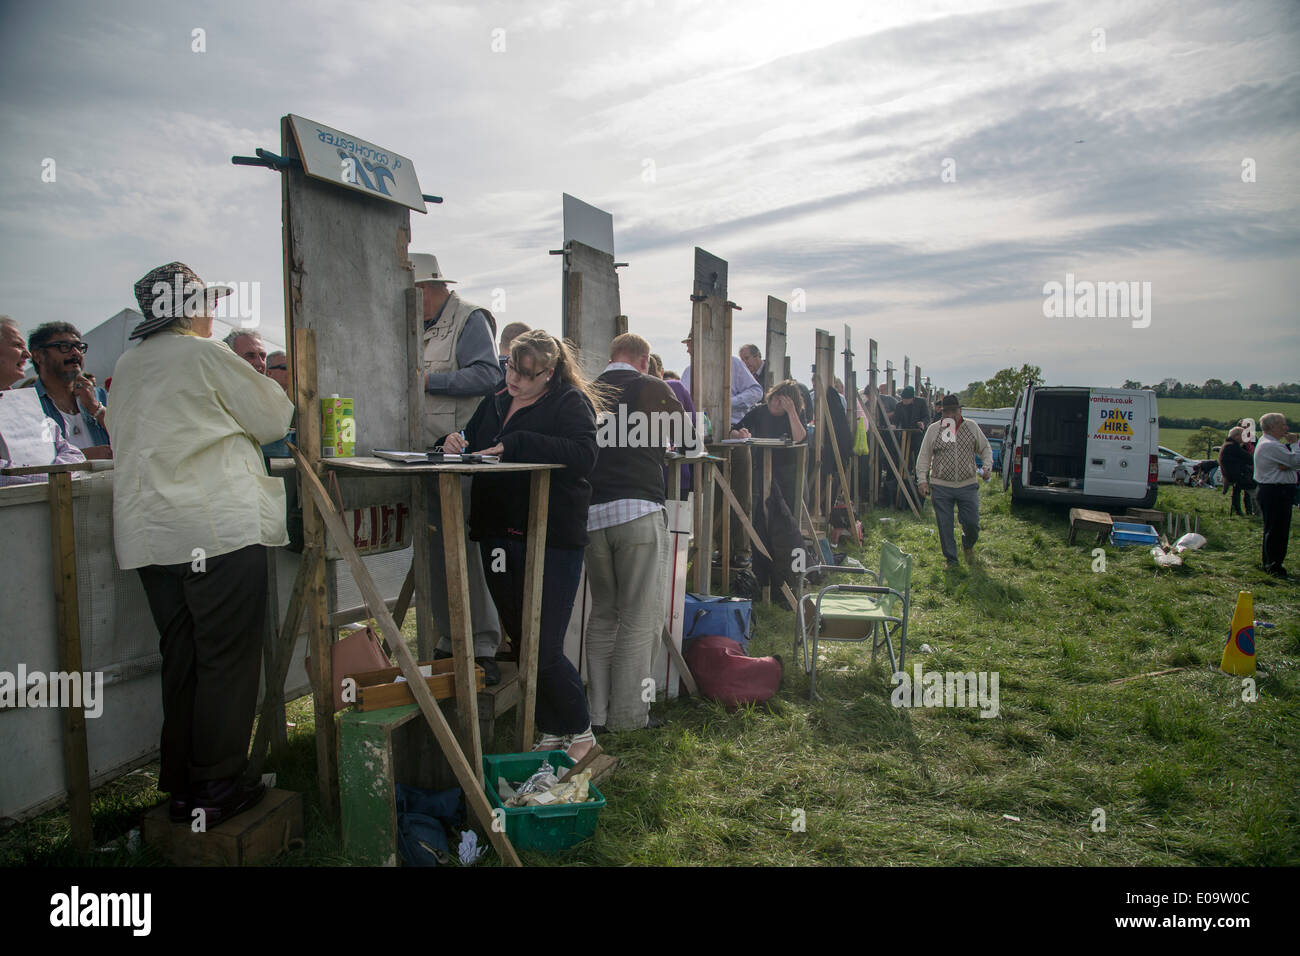 Behind bookies boards point to point bookmakers - Stock Image